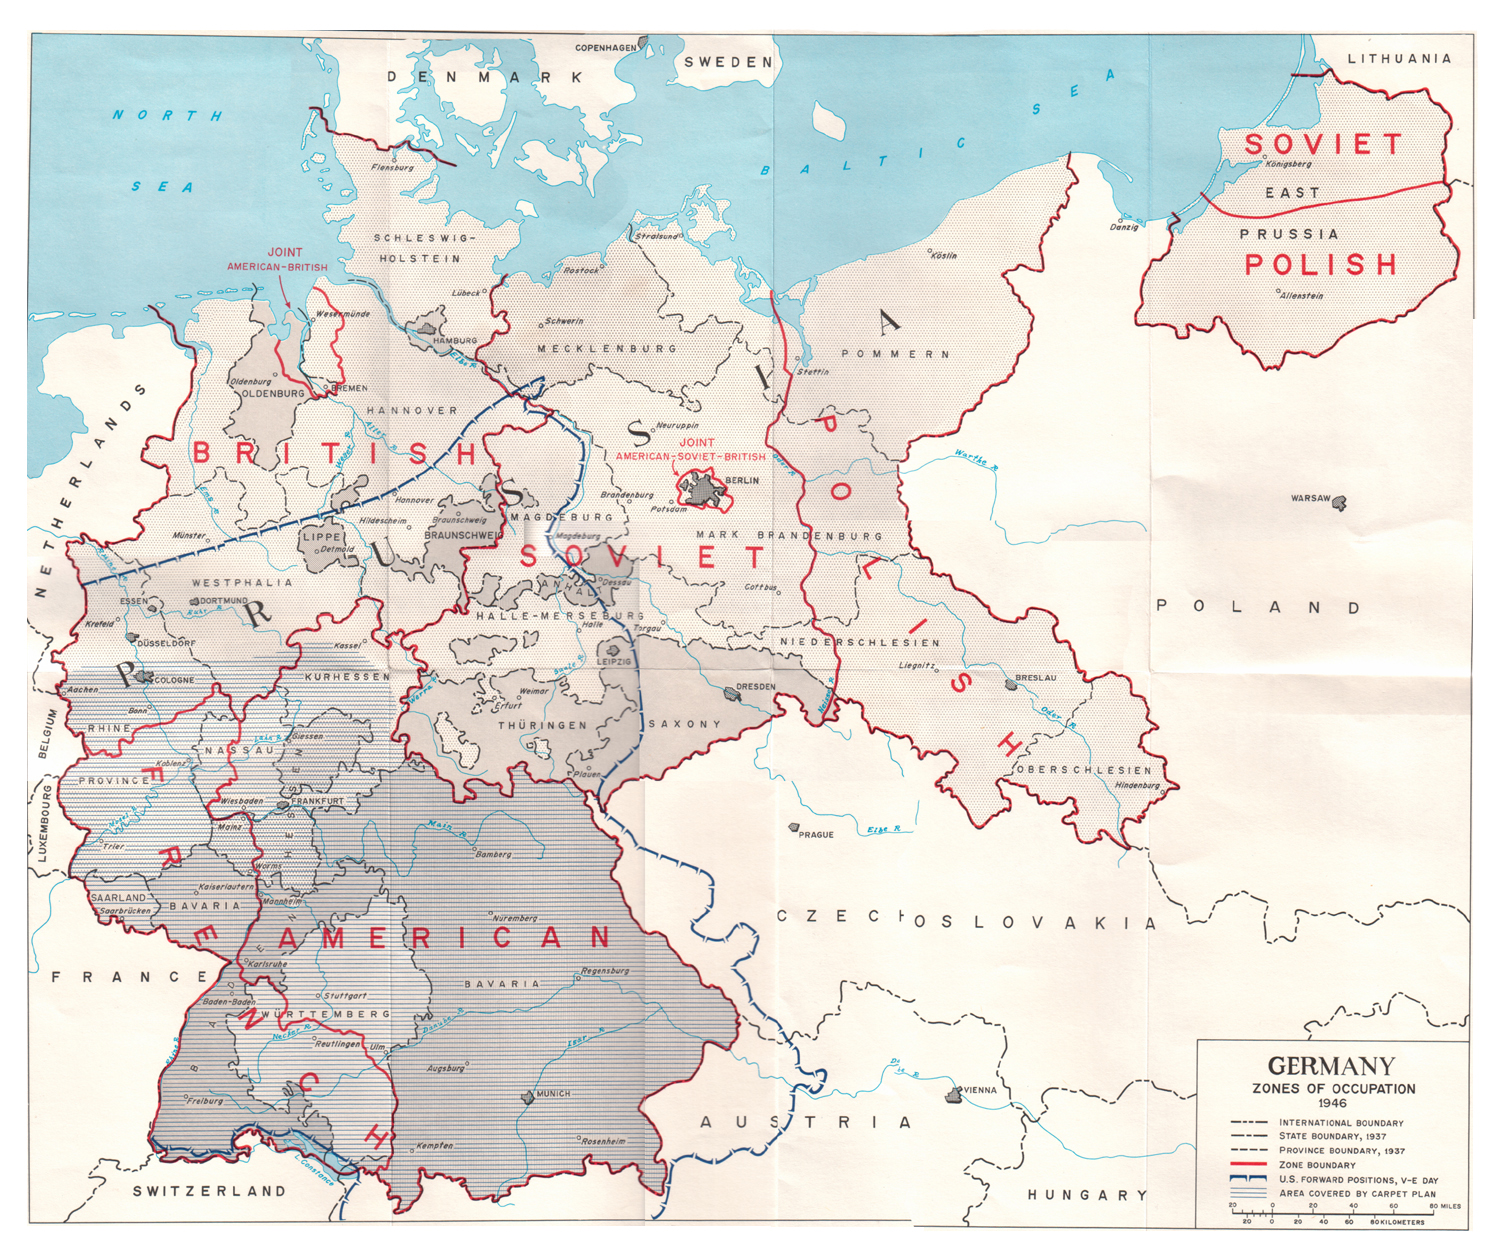 Map Of Germany 1944.Allies Occupation Zones Of Germany In 1945 Os 1206x1024 Mapporn